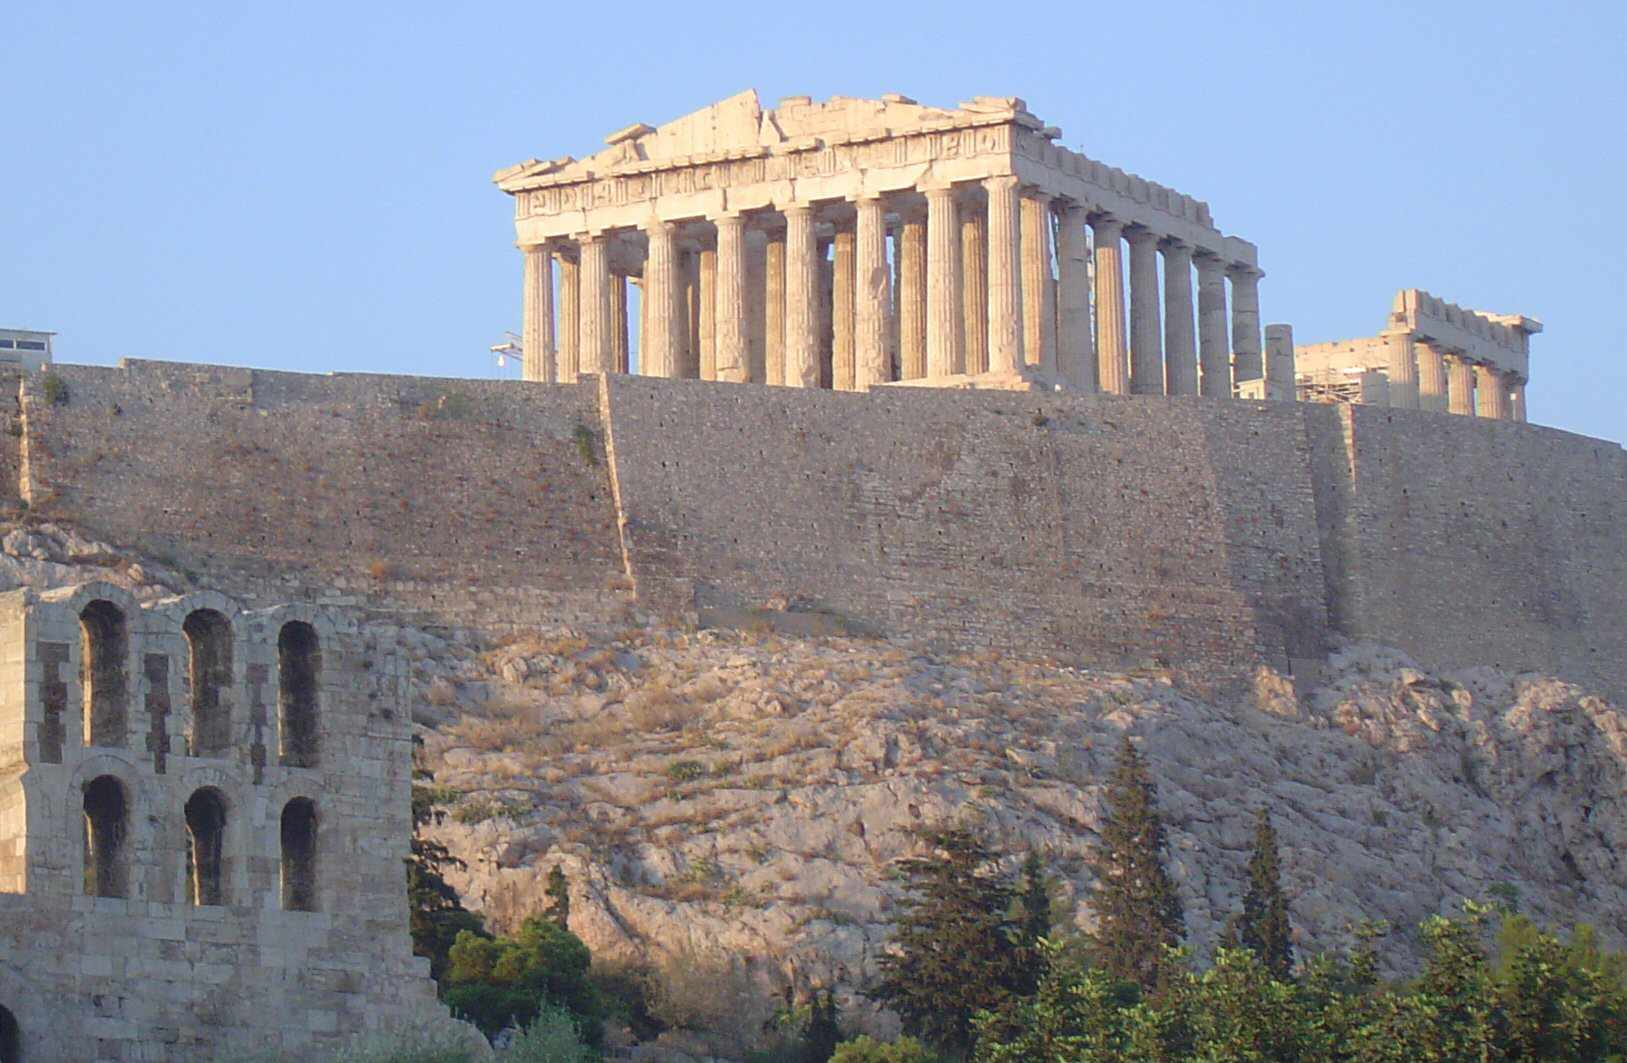 The Parthenon Temple crowns the Acropolis in Athens, Greece